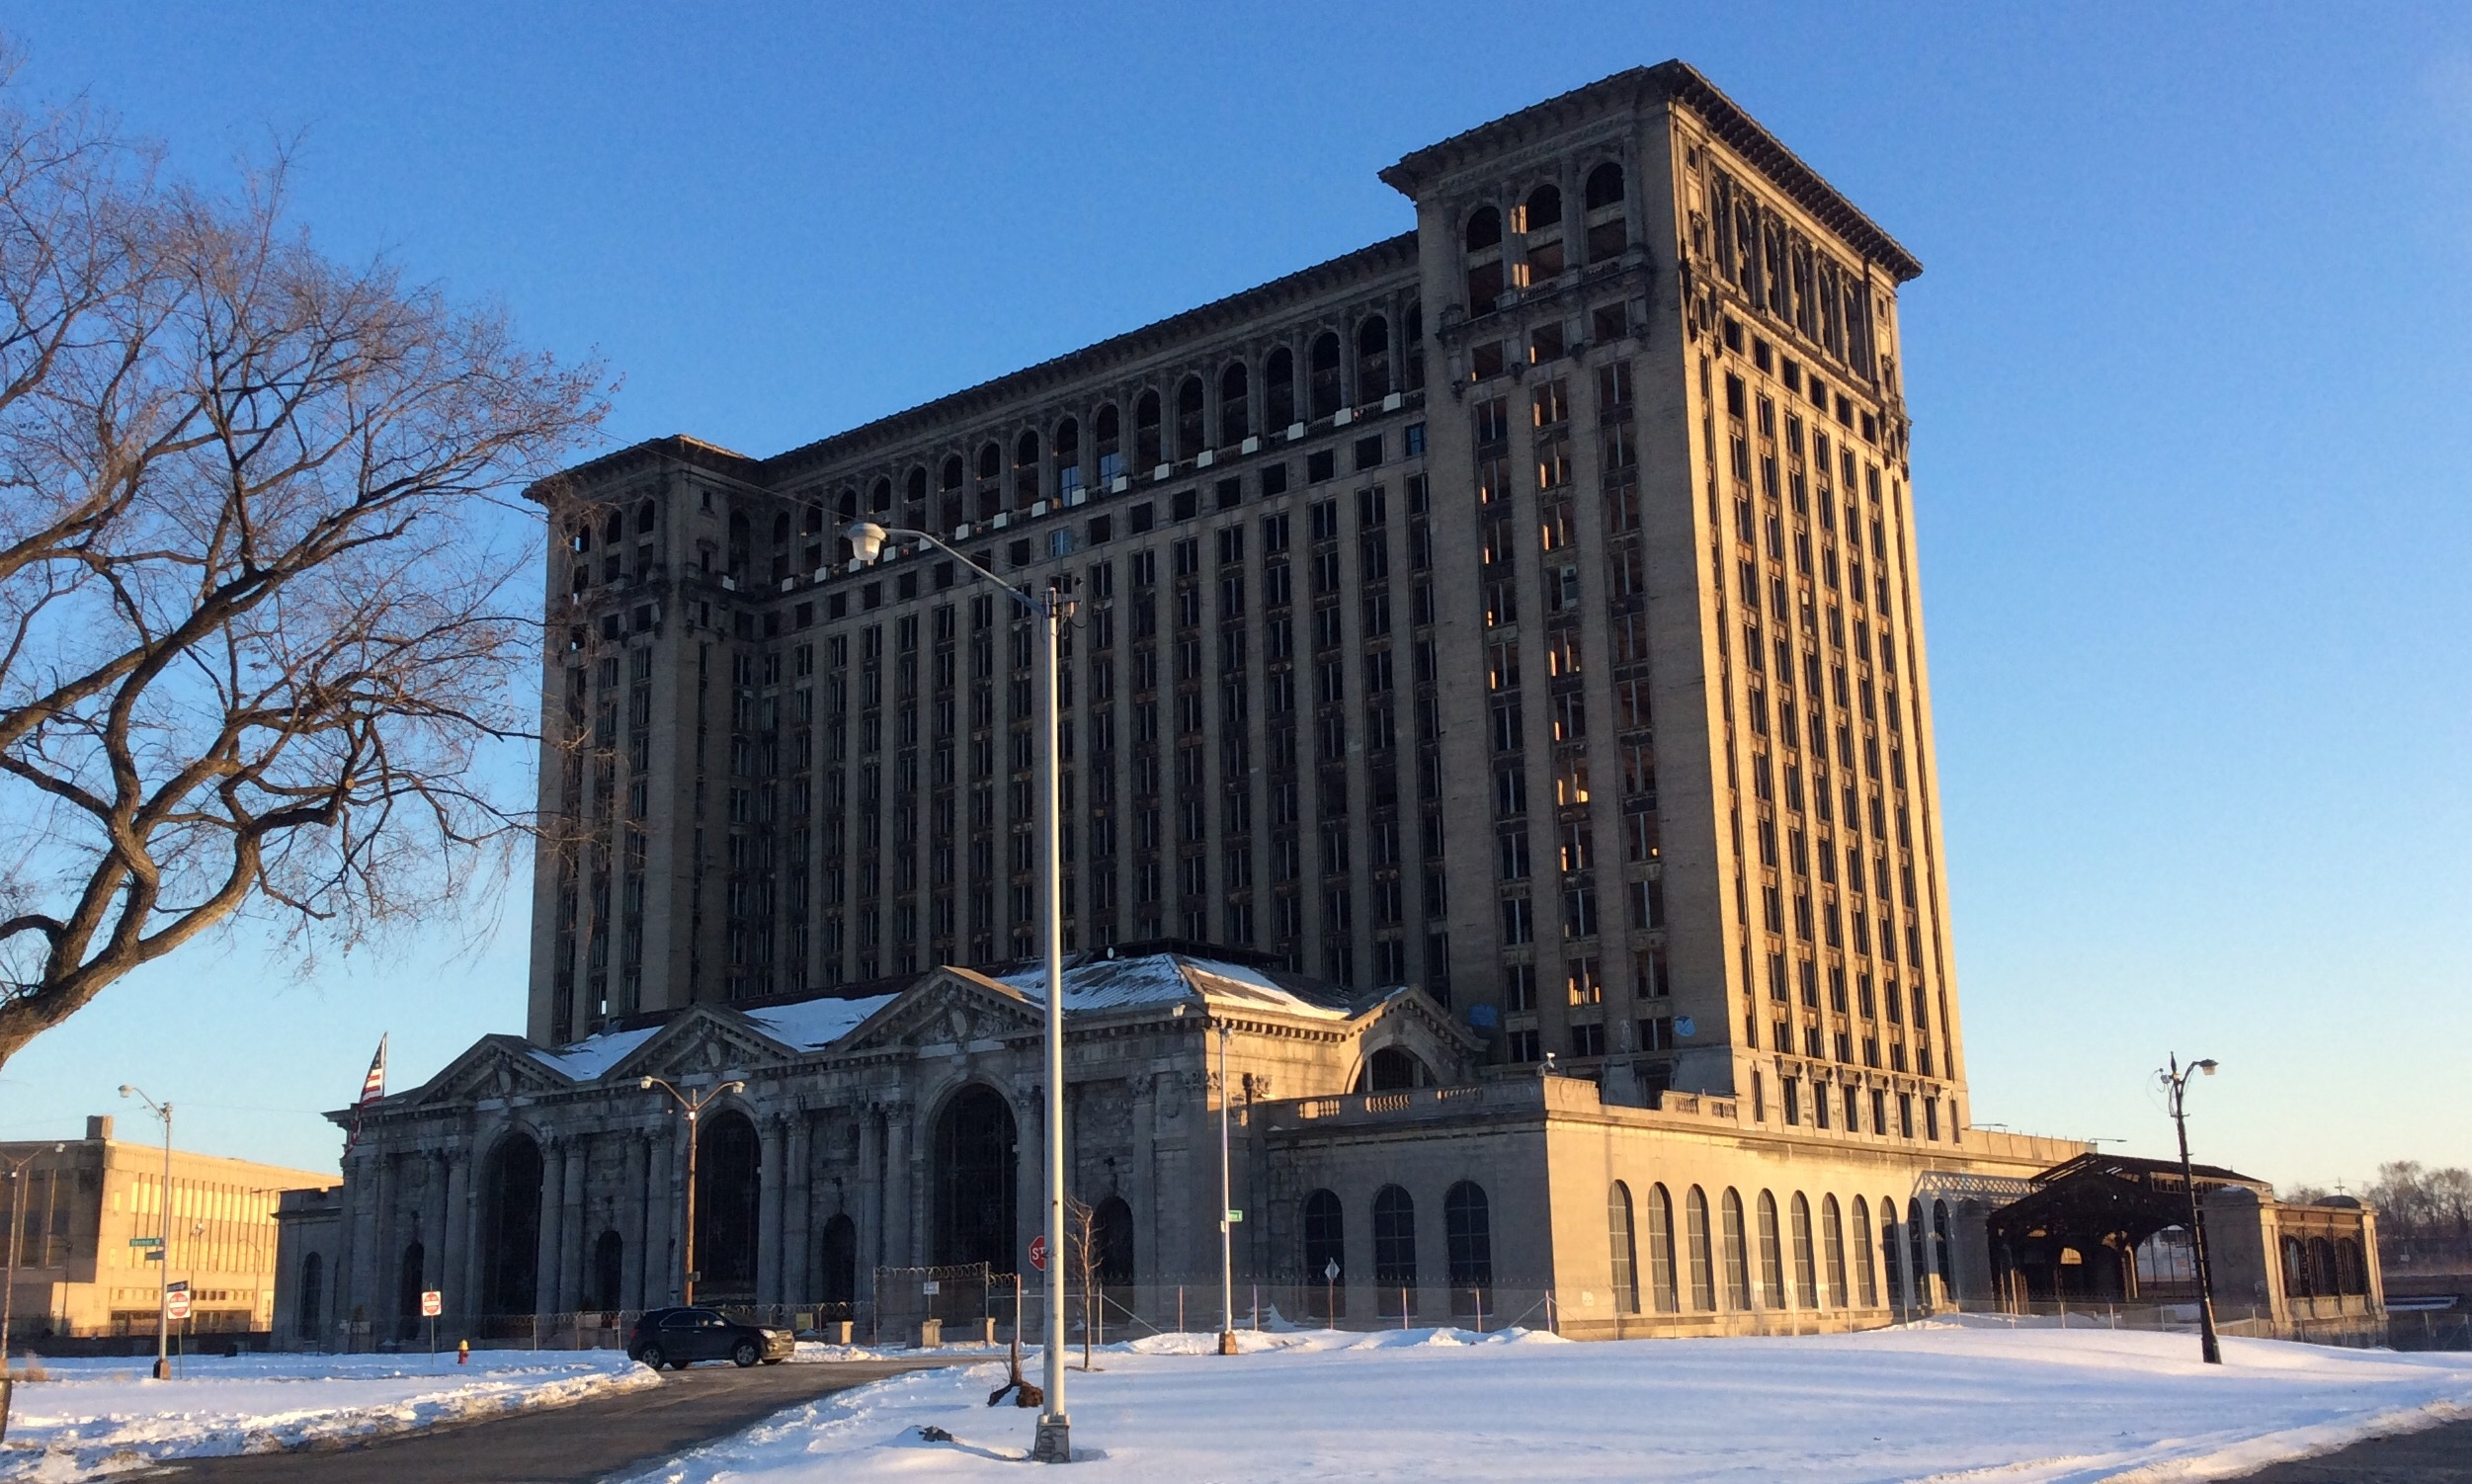 Michigan Central Station as shot today. Daily Detroit Photo